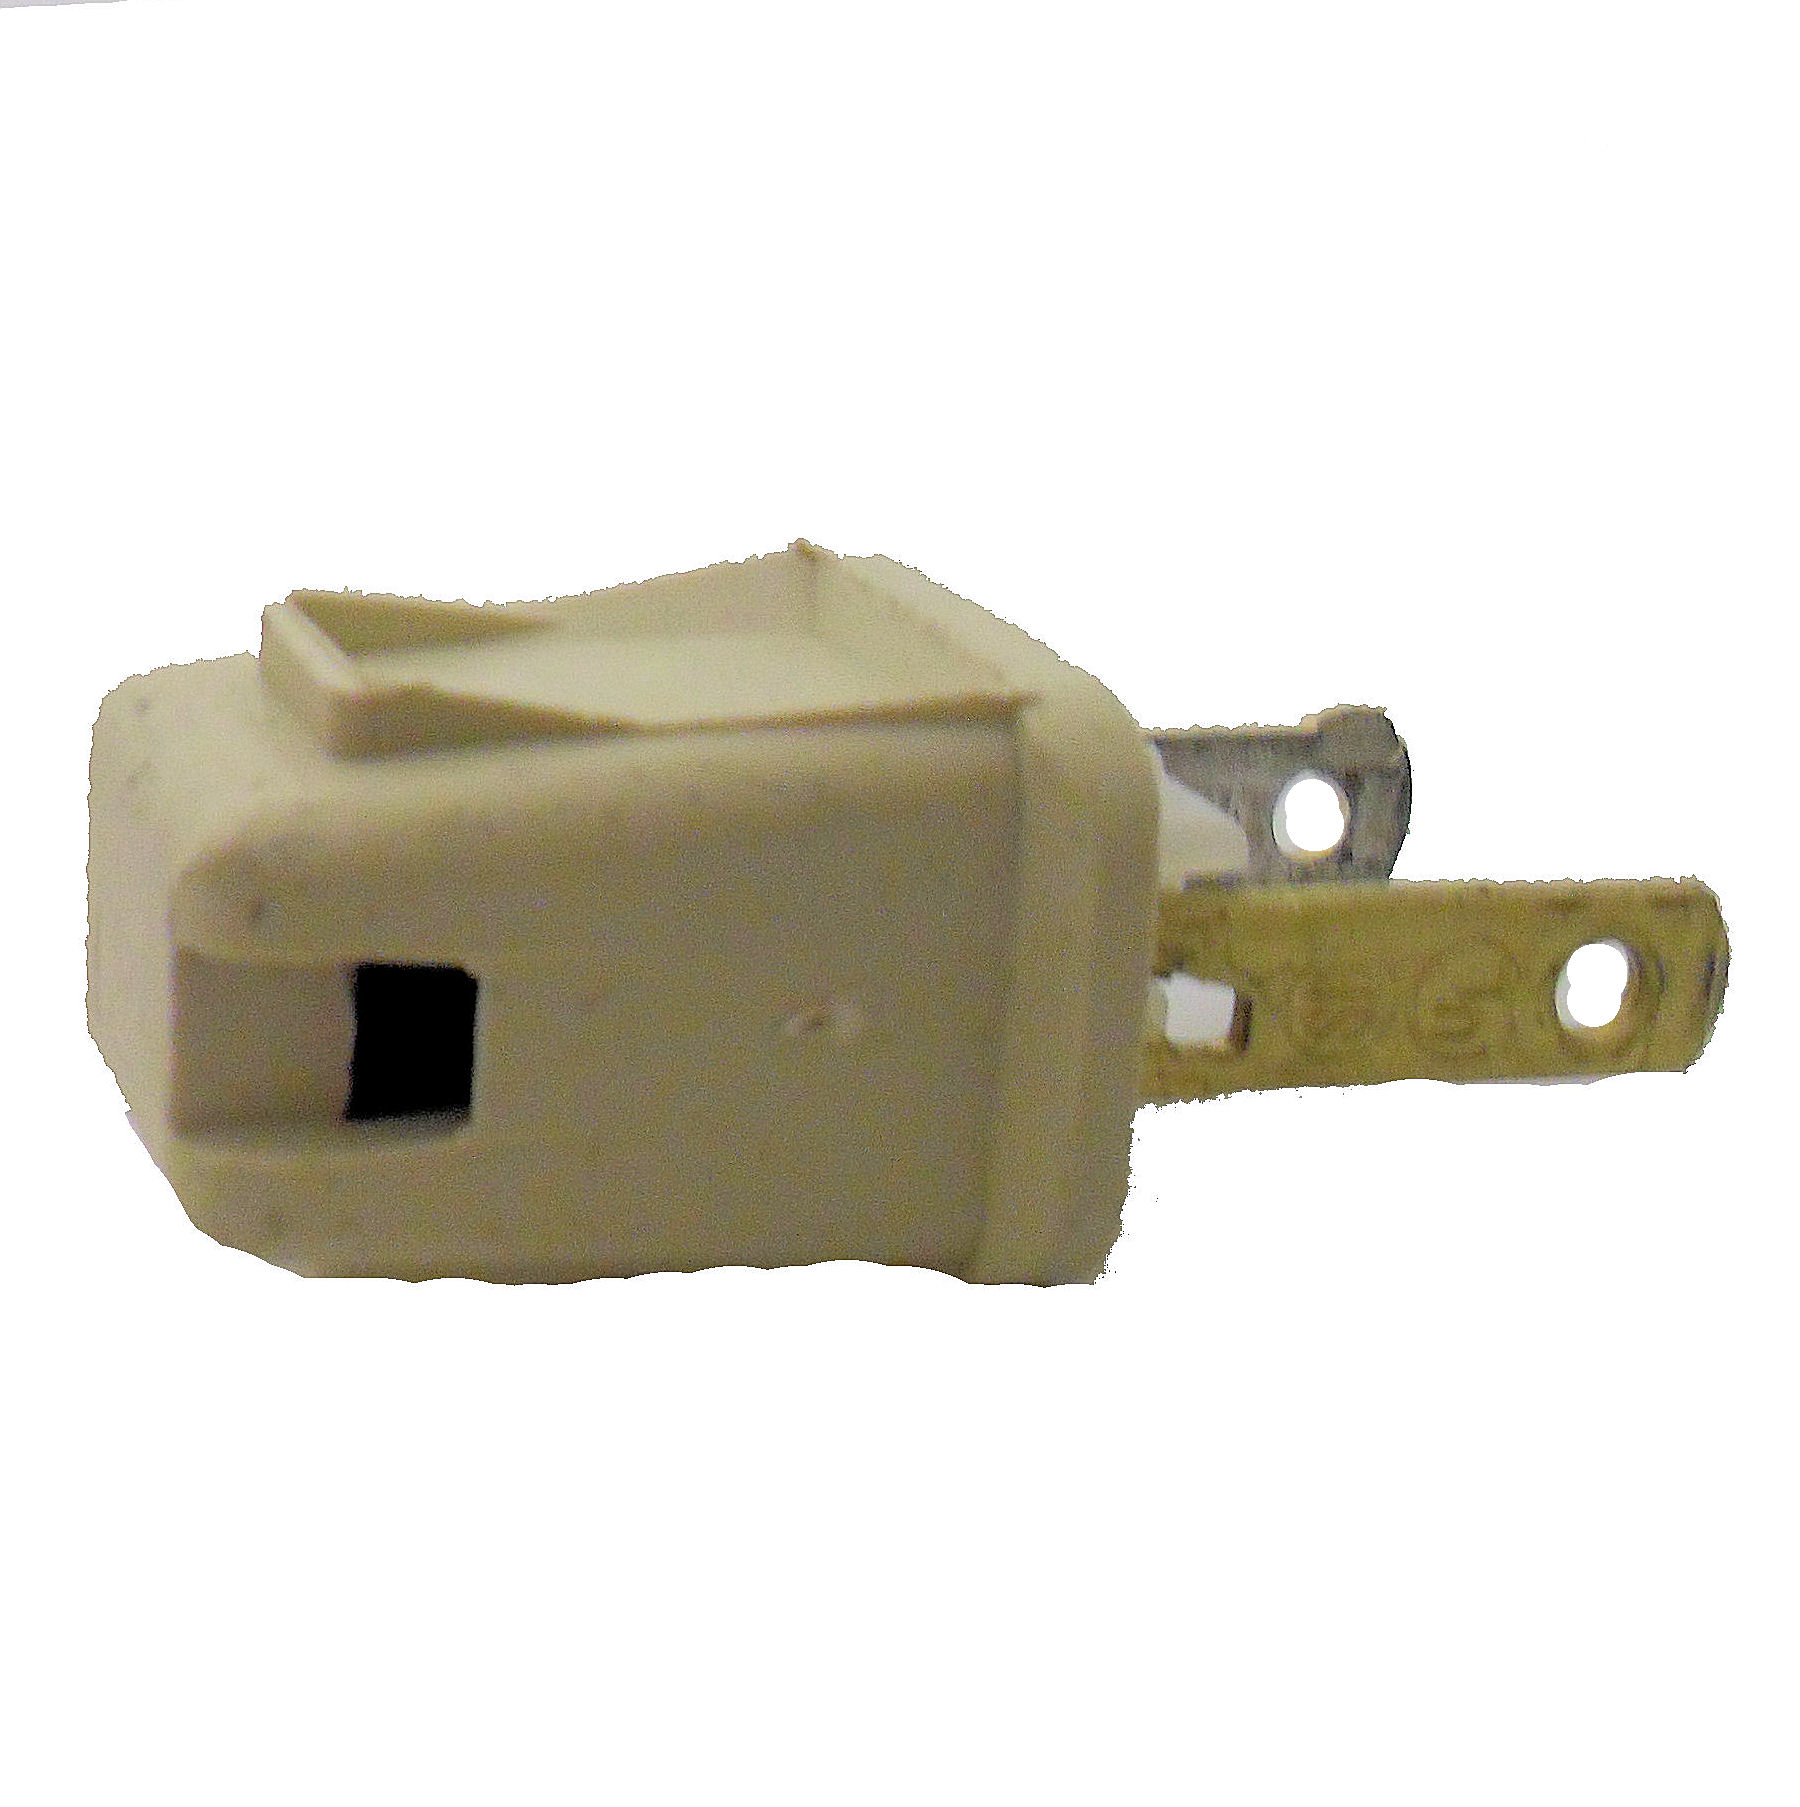 IVORY QUICK CONNECT SPT 1 PLUGS